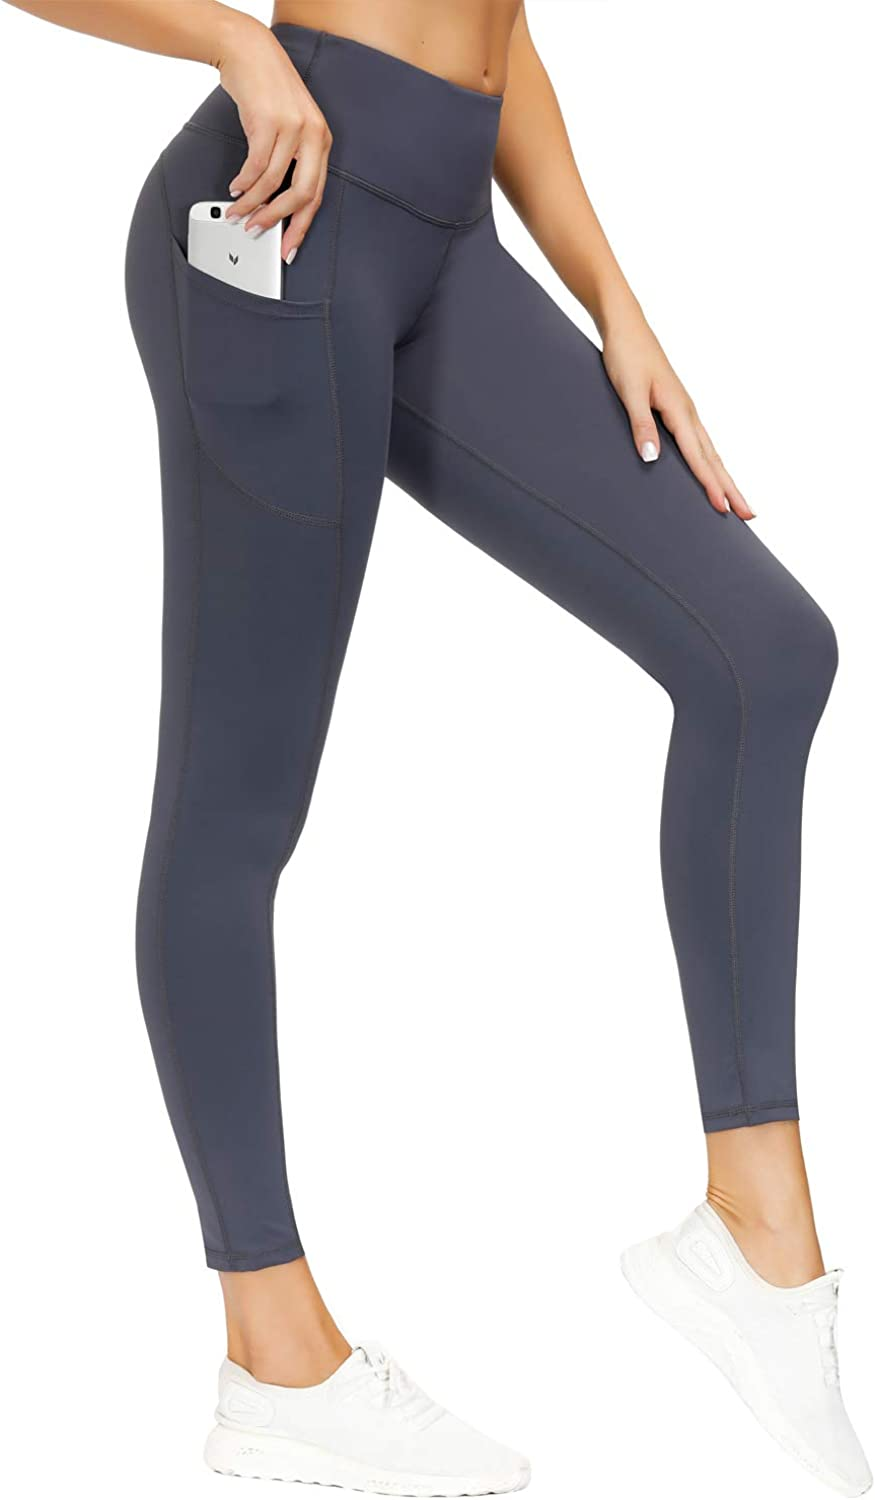 ZASDKE Yoga Pants with Pockets Gym Leggings Tummy Control Workout Running Trousers for Women